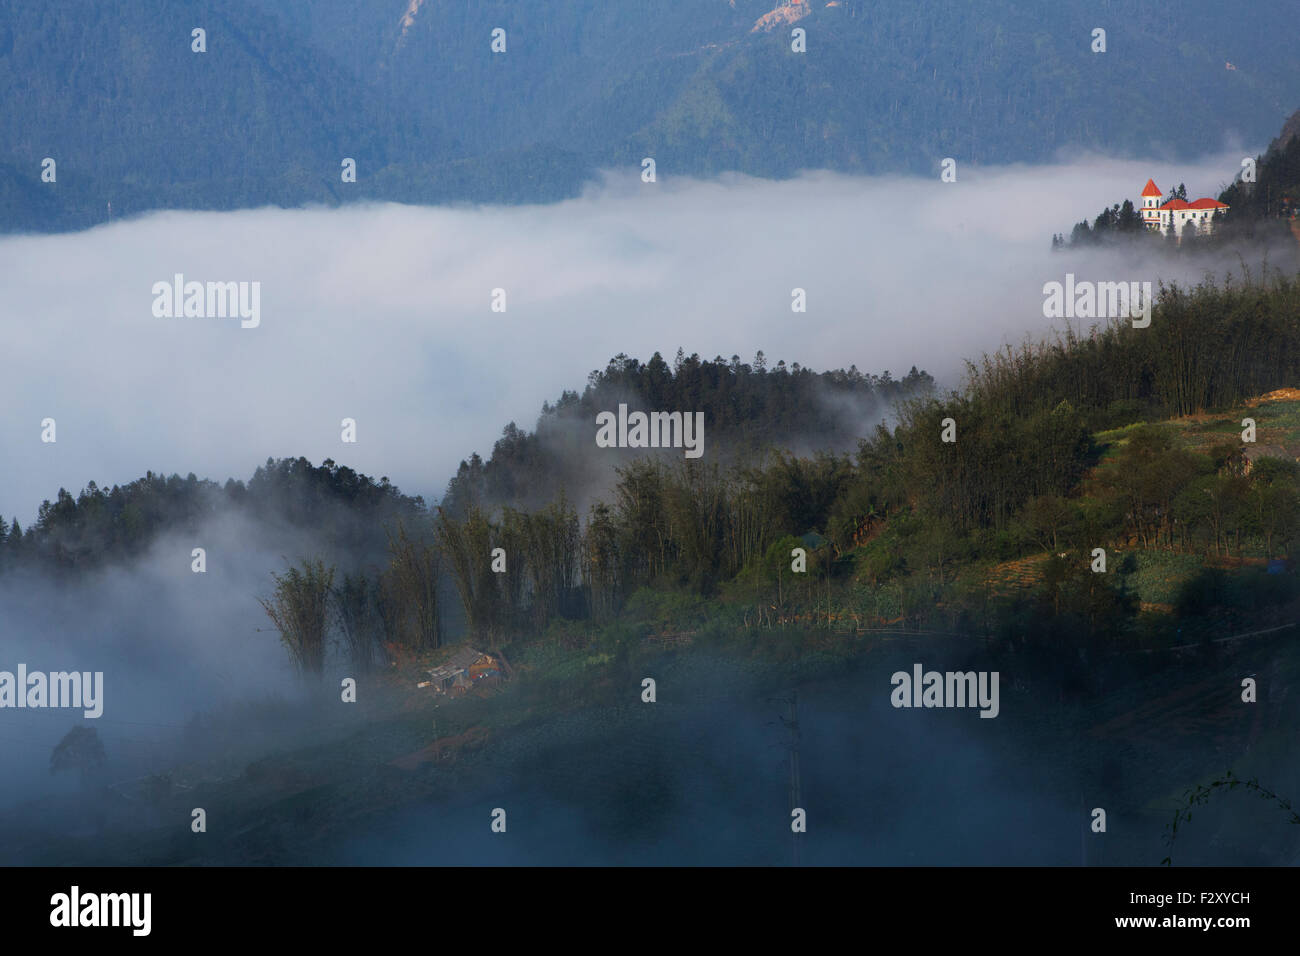 View on Sapa town, Northern Vietnam - Stock Image